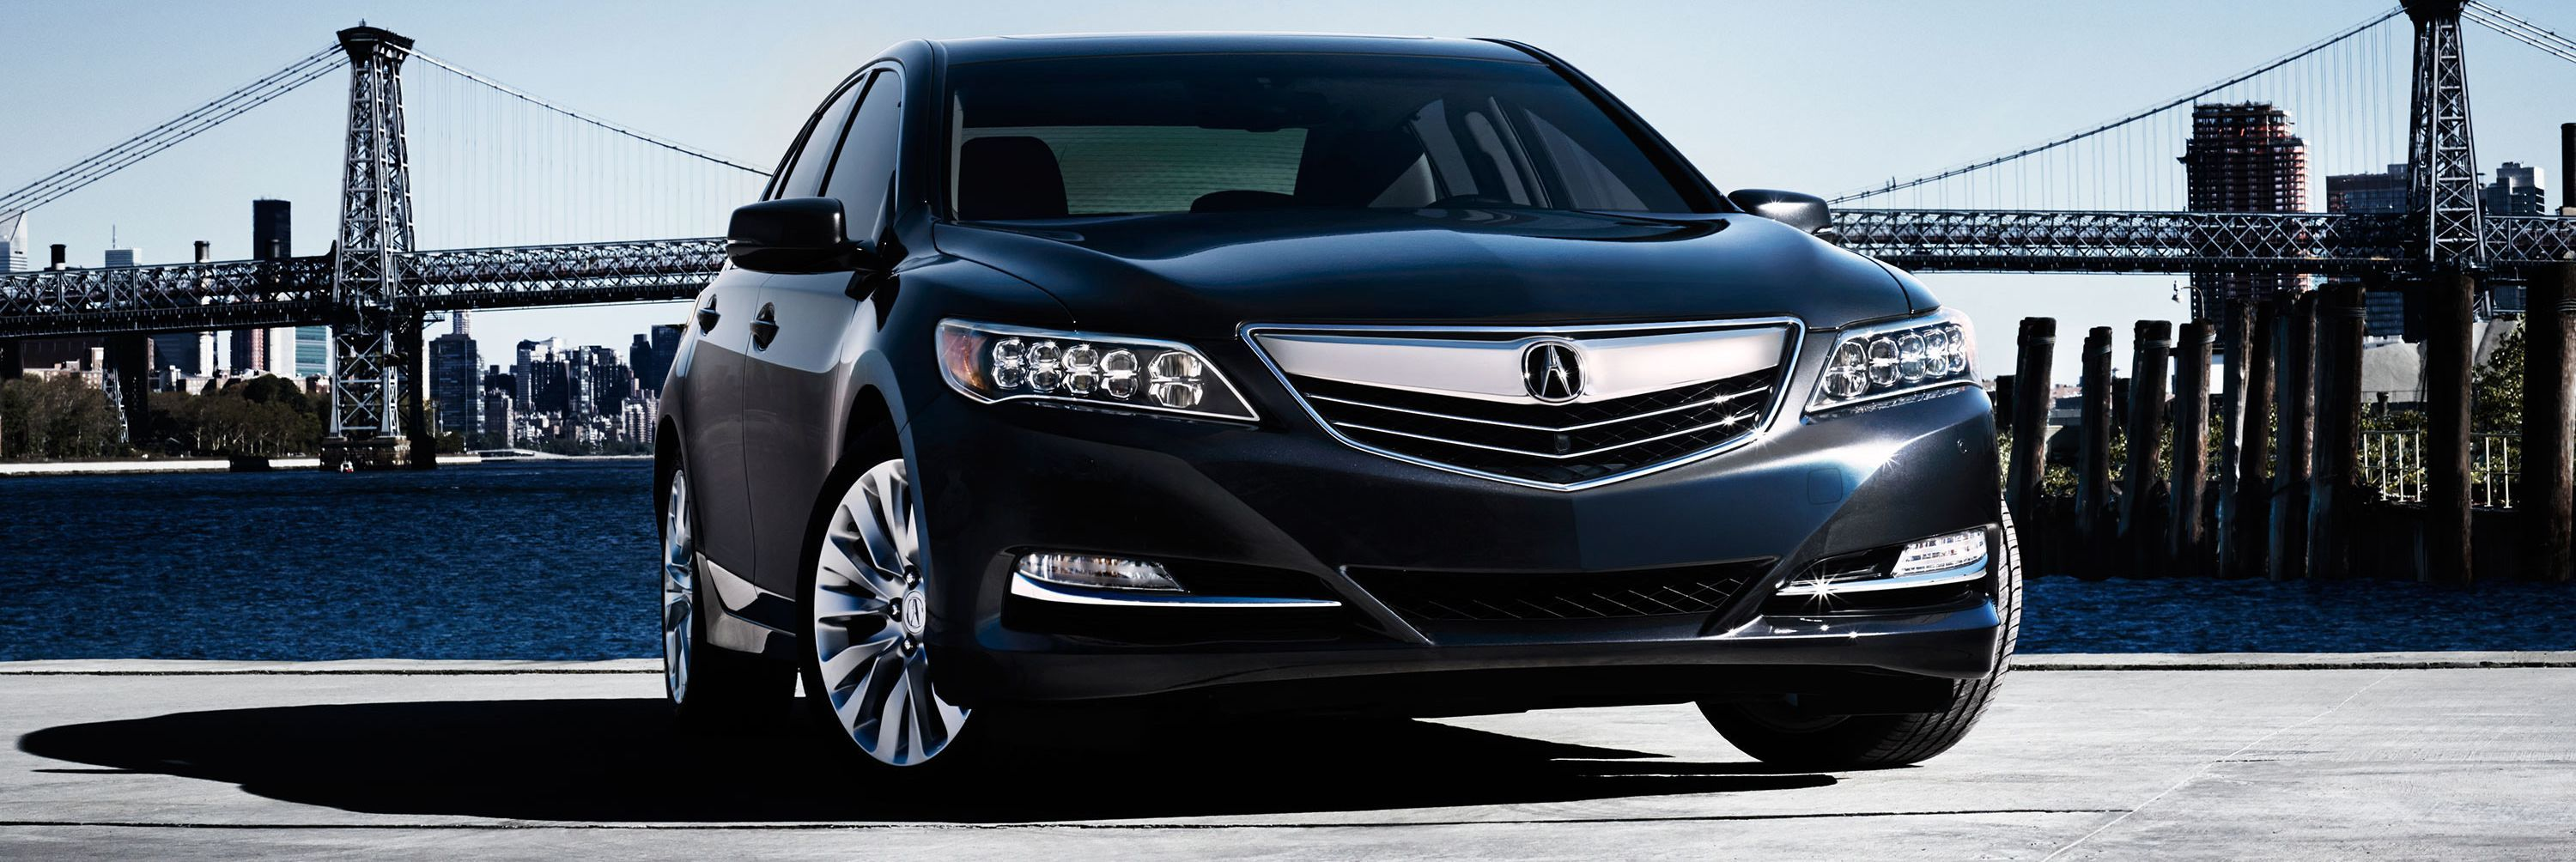 2016 Acura RLX lease near Falls Church, VA